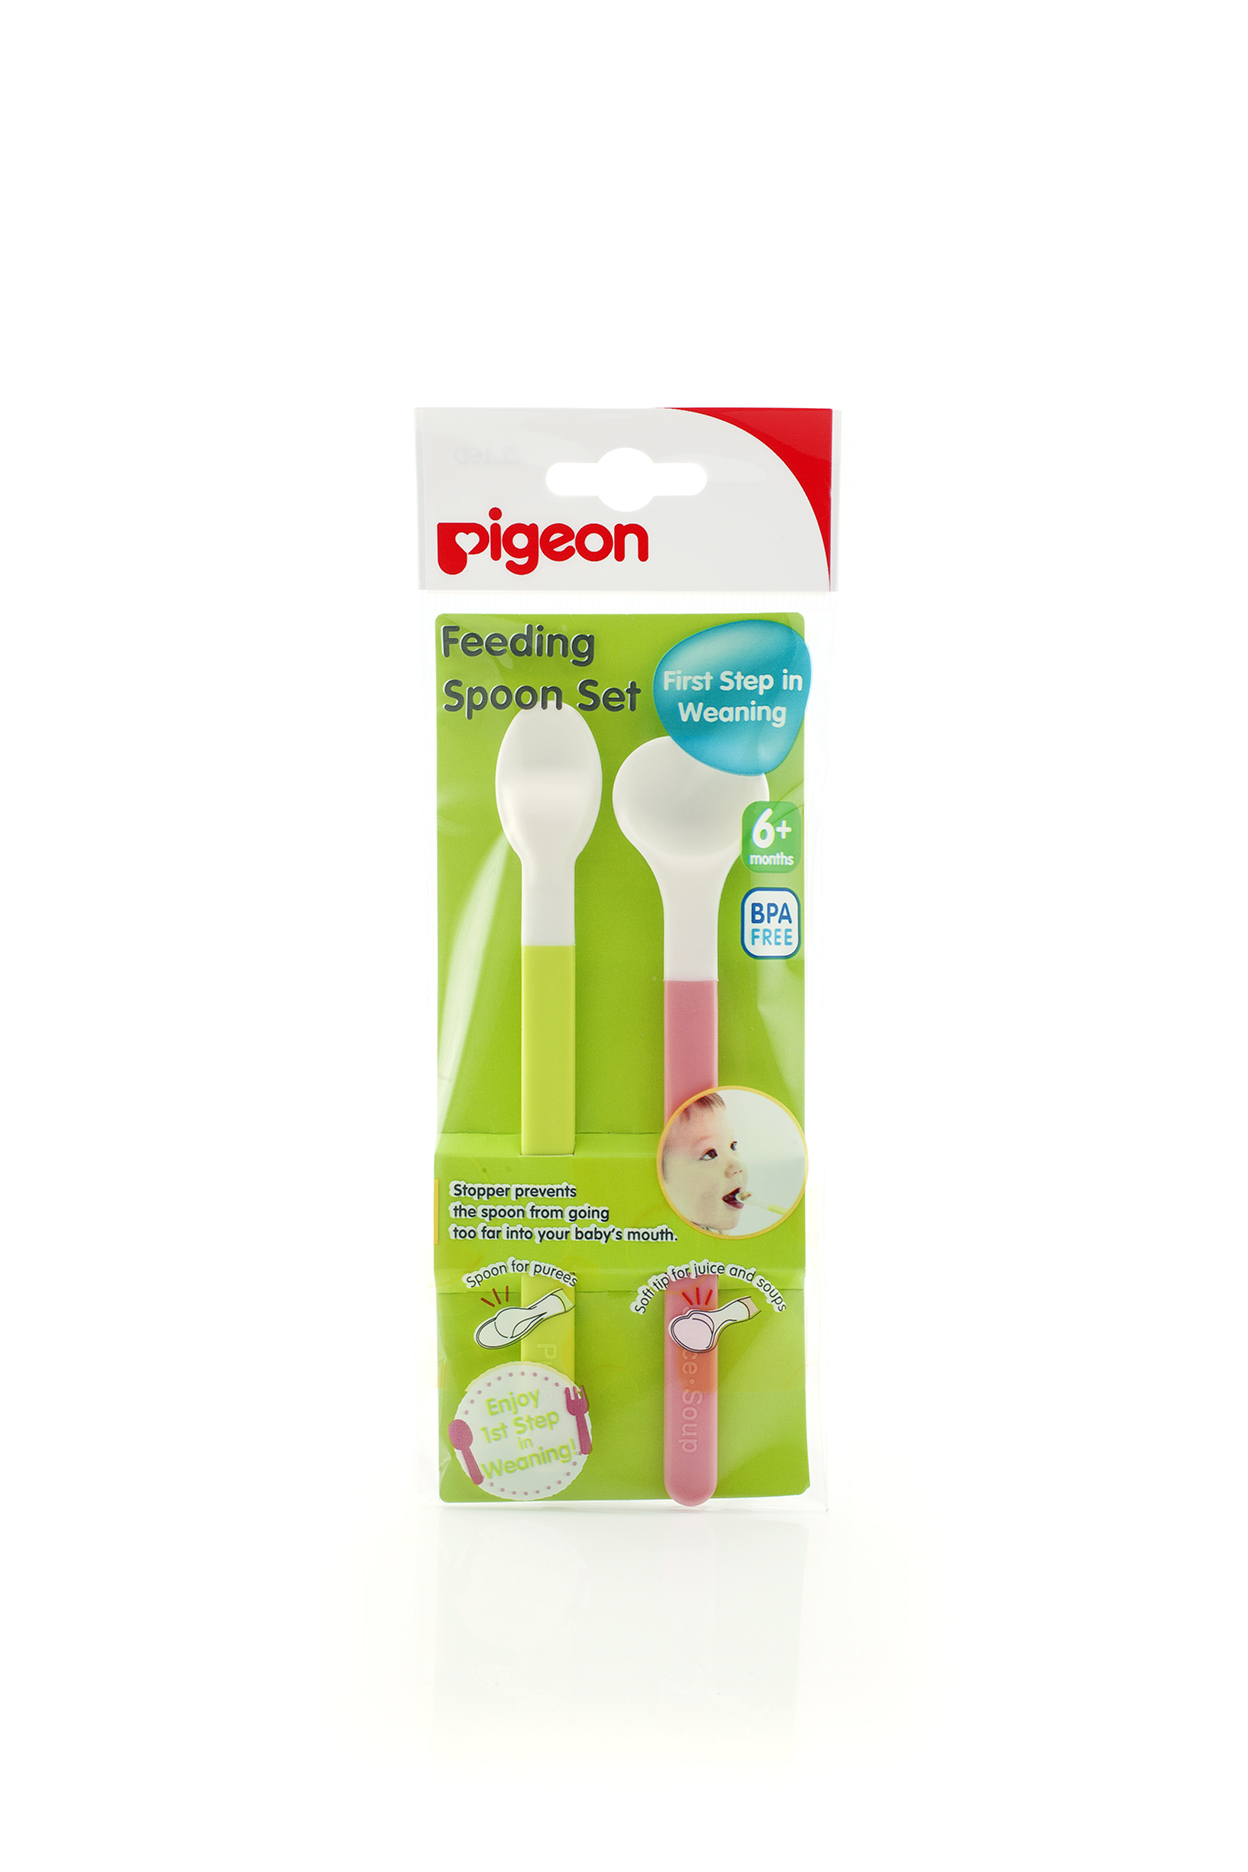 Pigeon Silicone Feeding Spoon Weaning Set BPA Free